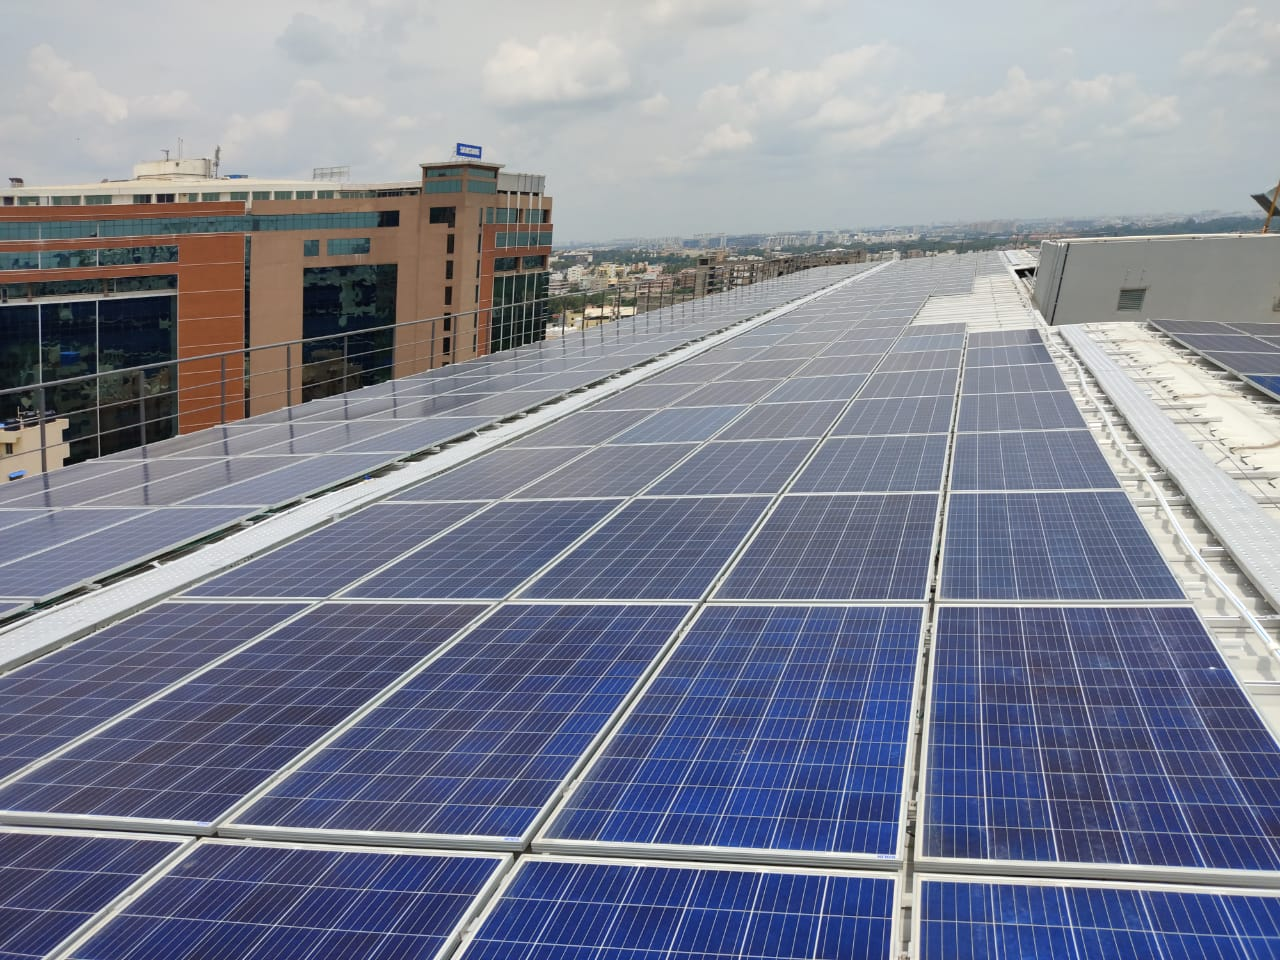 Banglore solar project